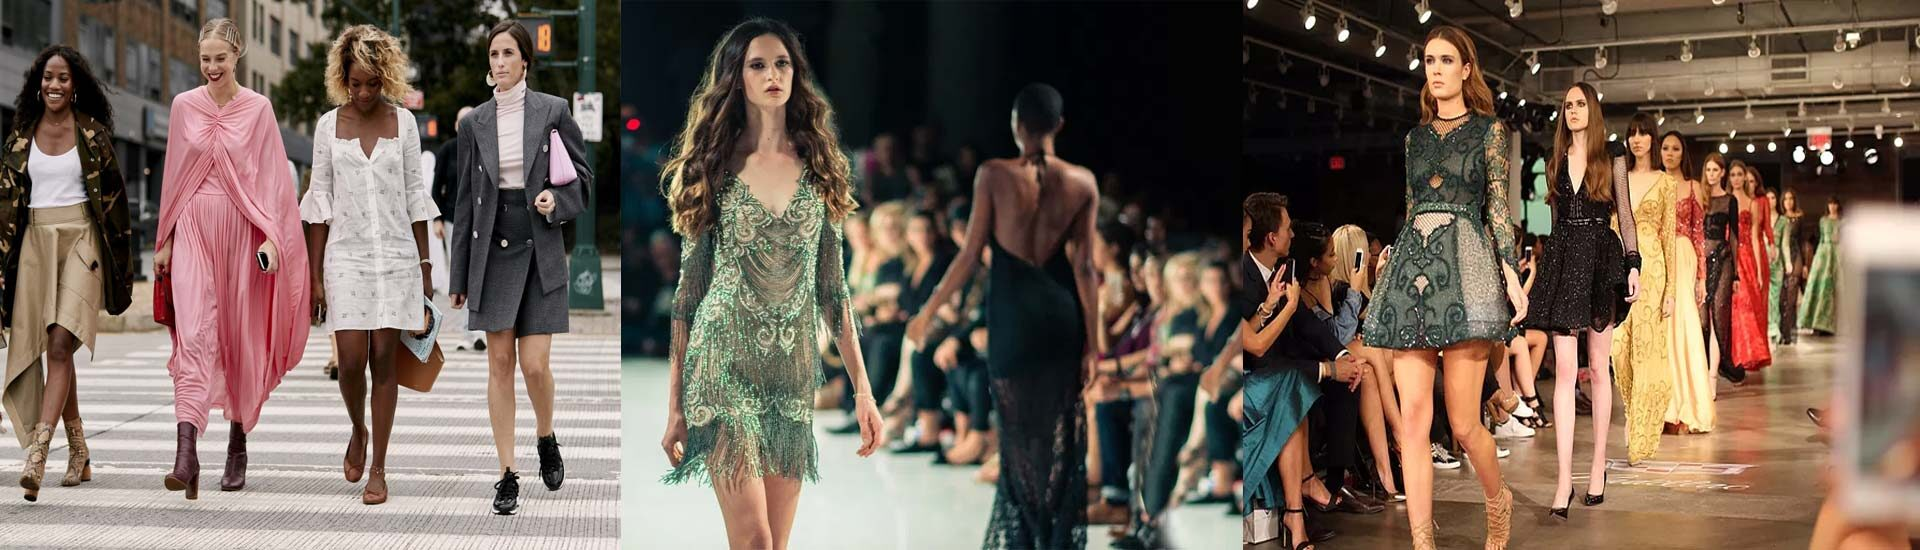 LIST-OF-FAMOUS-FASHION-SHOWS-OF-USA